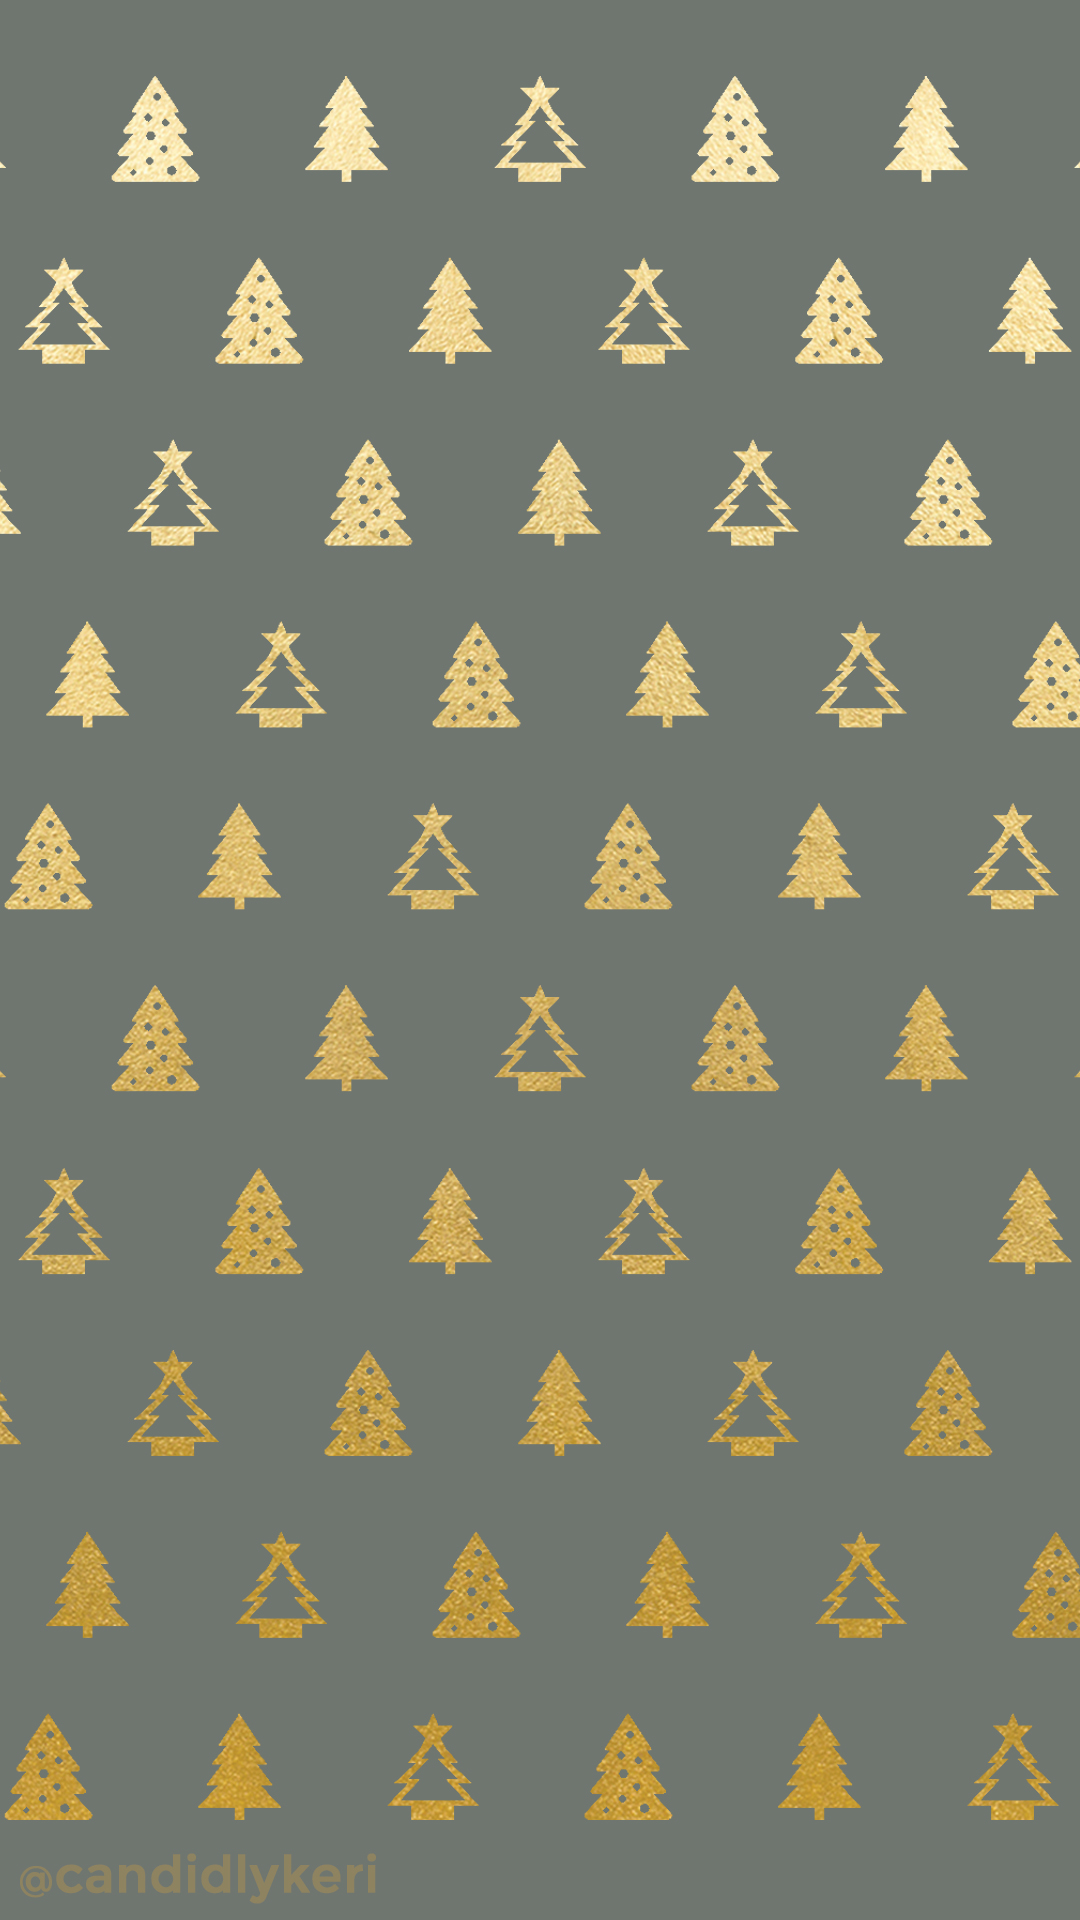 Christmas-tree-gold-foil-green-background-you-can-download-for-free-on-the-blog-For-any-d-wallpaper-wp3403903